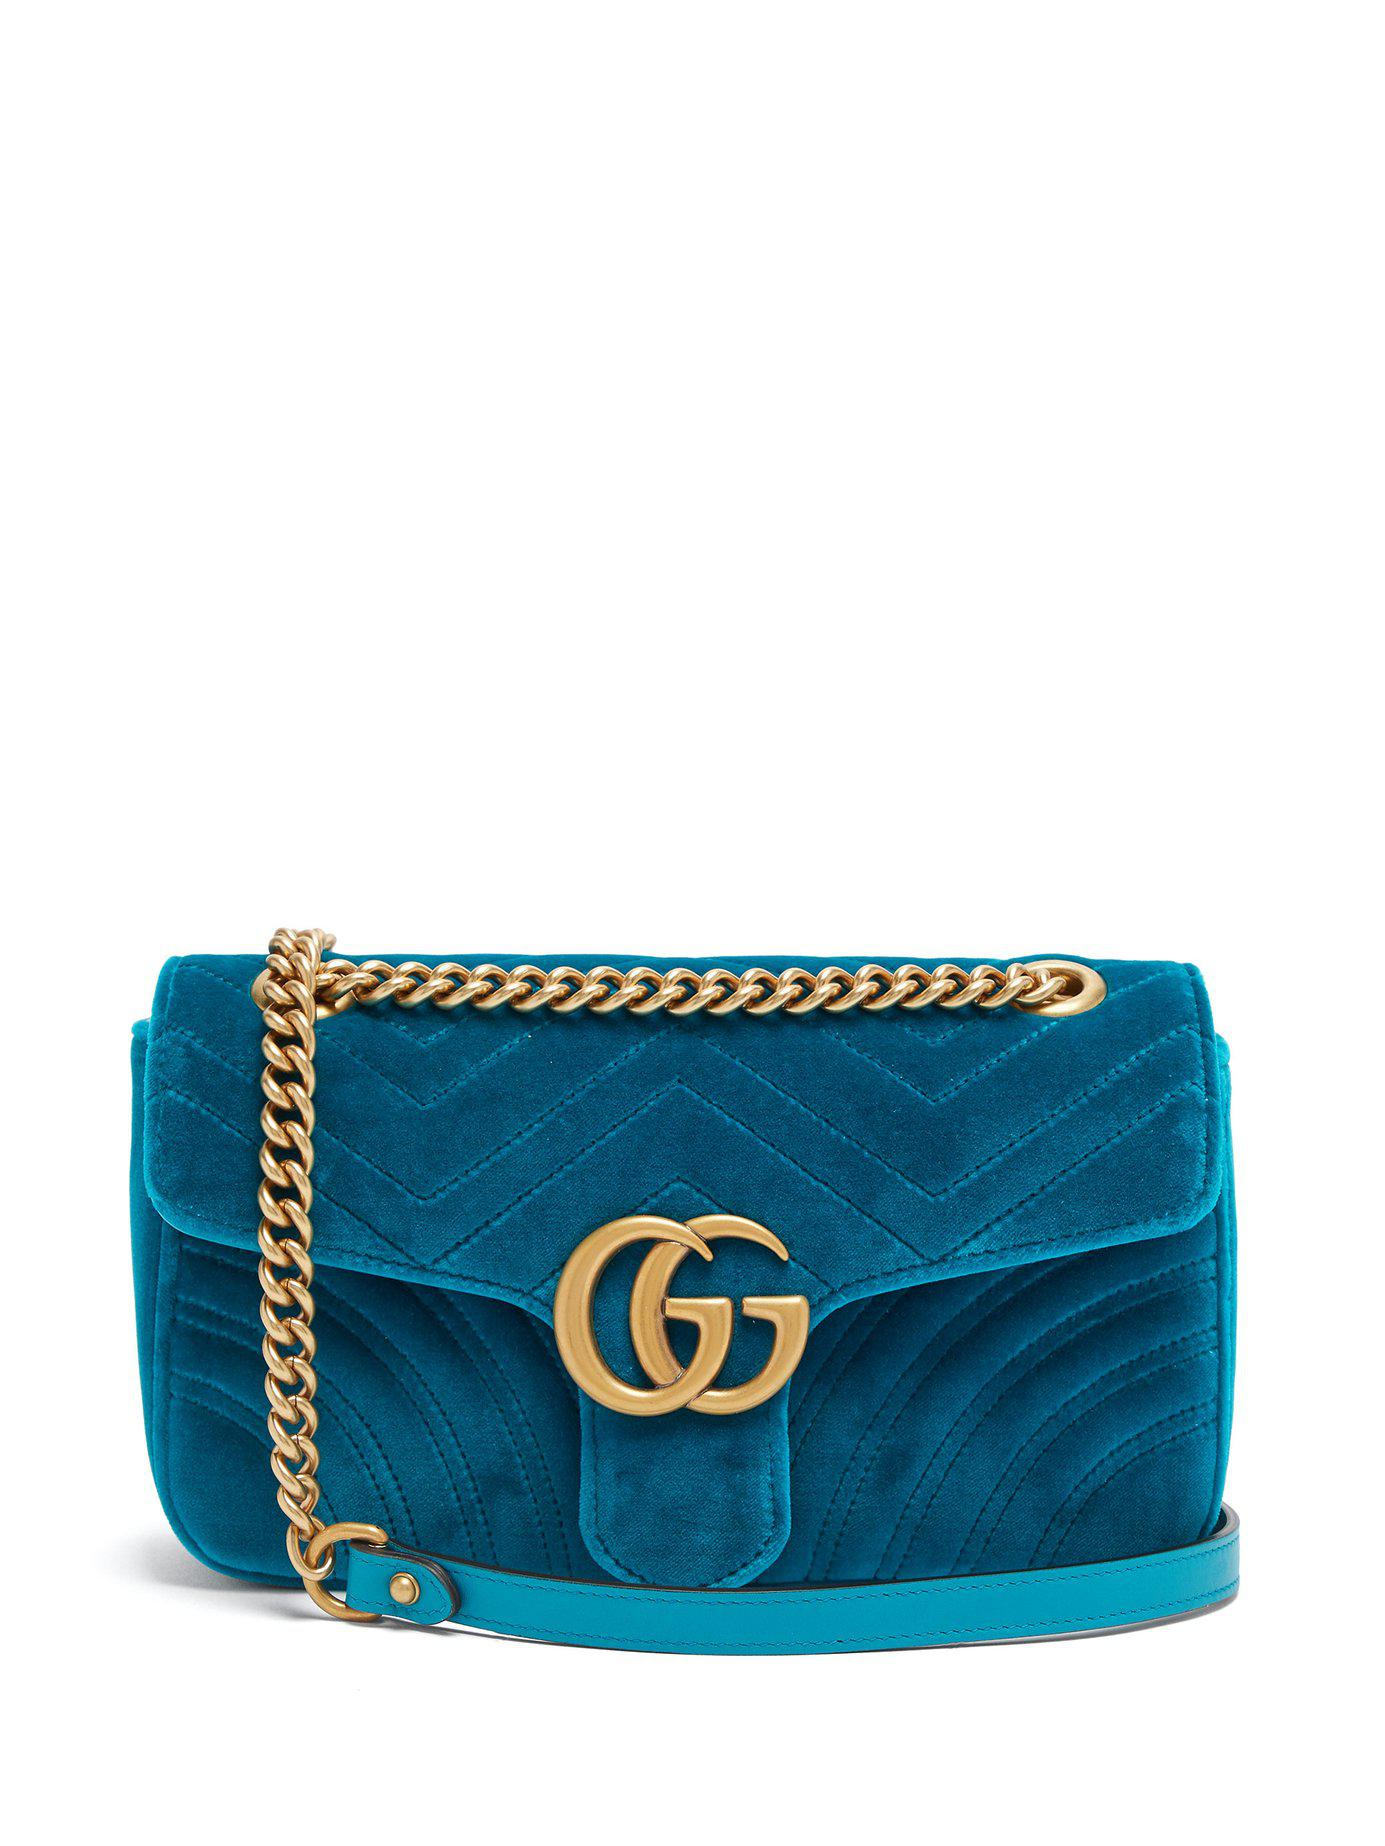 d0f0d585e5c Gucci Gg Marmont Small Quilted Velvet Shoulder Bag in Green - Lyst